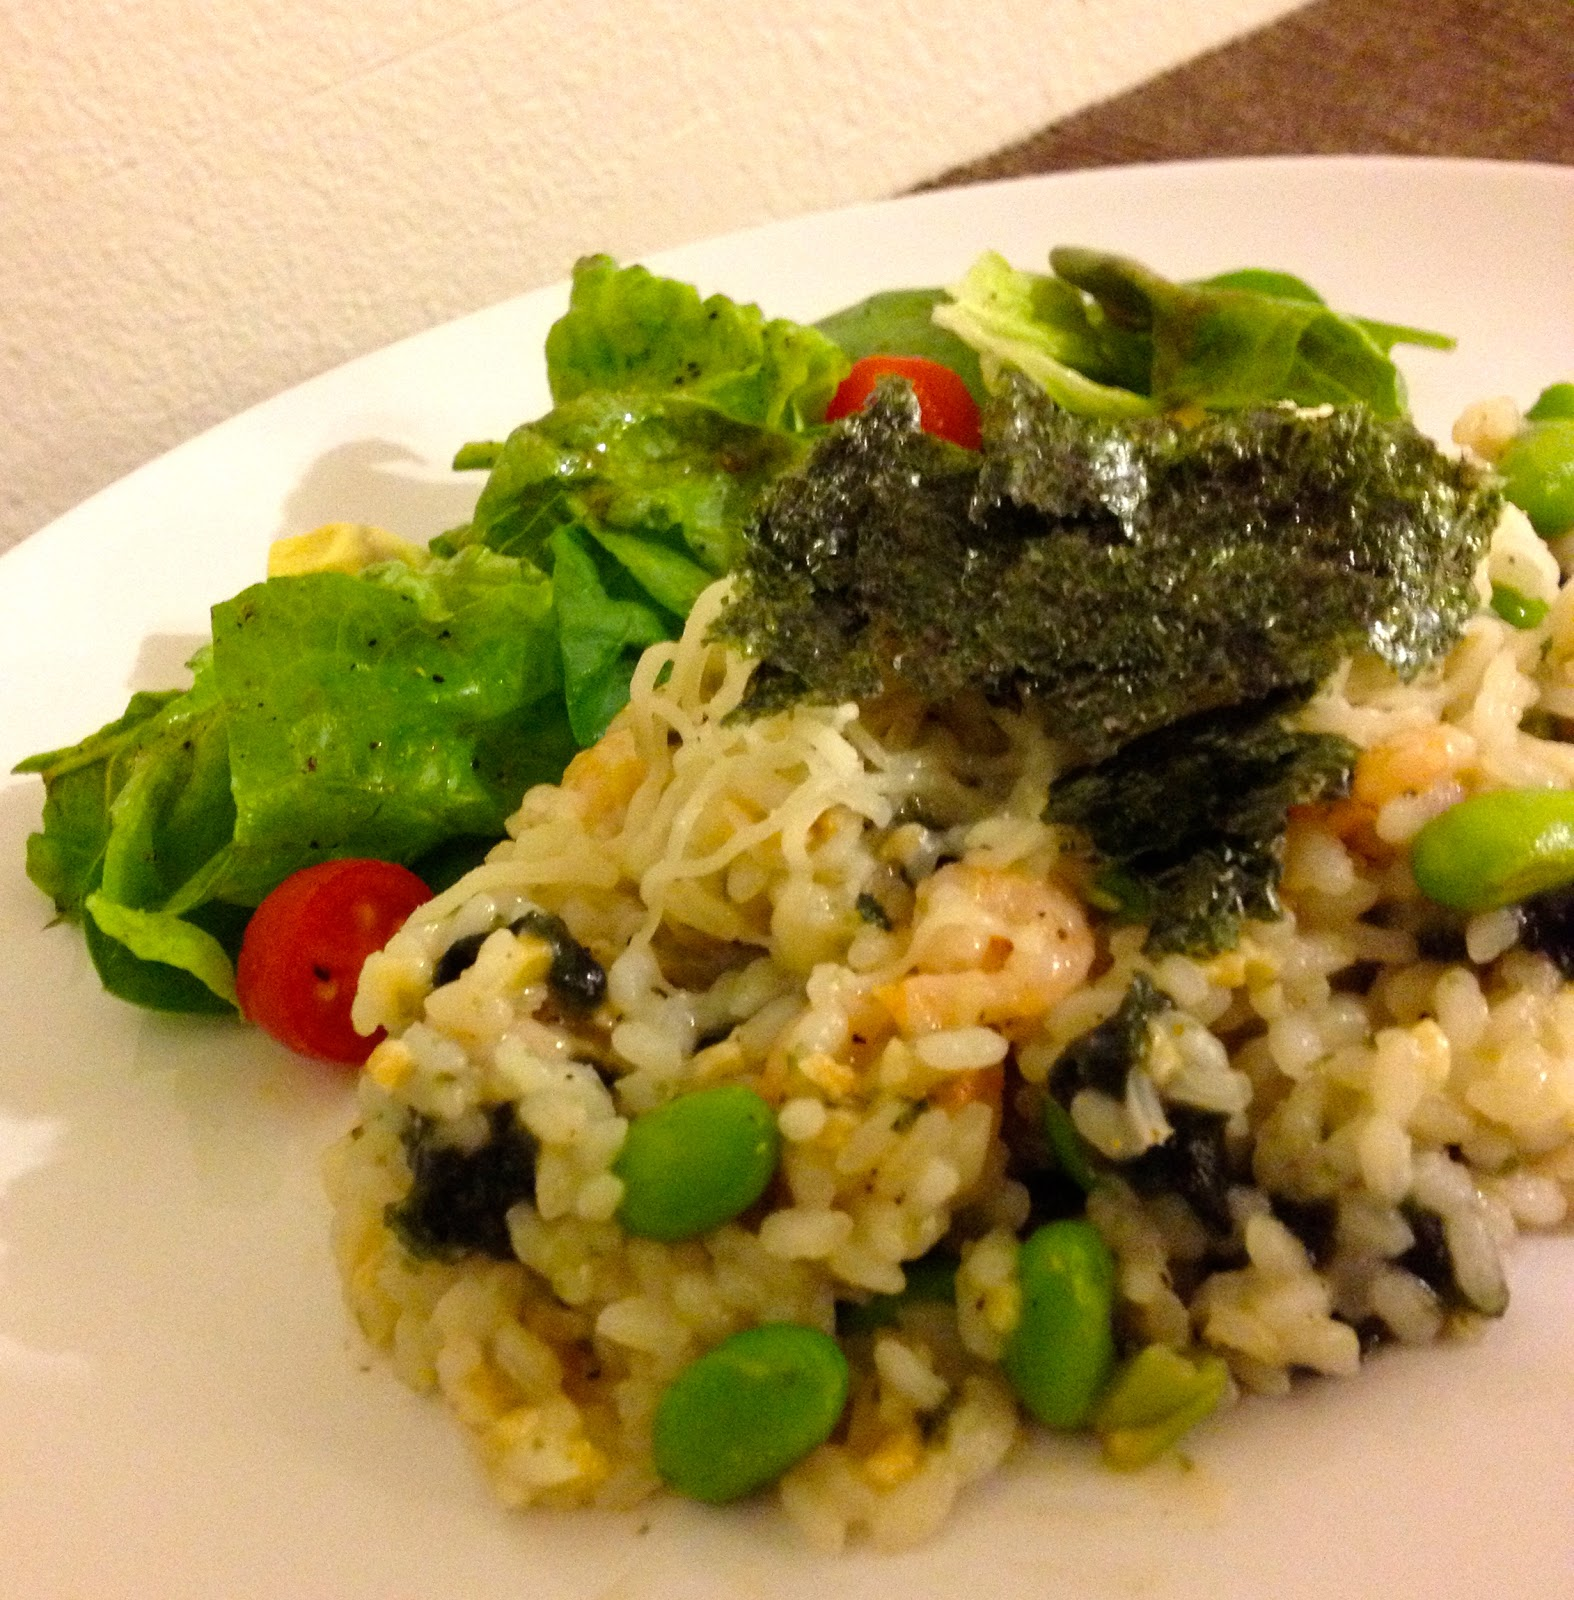 Poppin' kitchen: Seaweed garlic risotto with Shrimp and Edamame